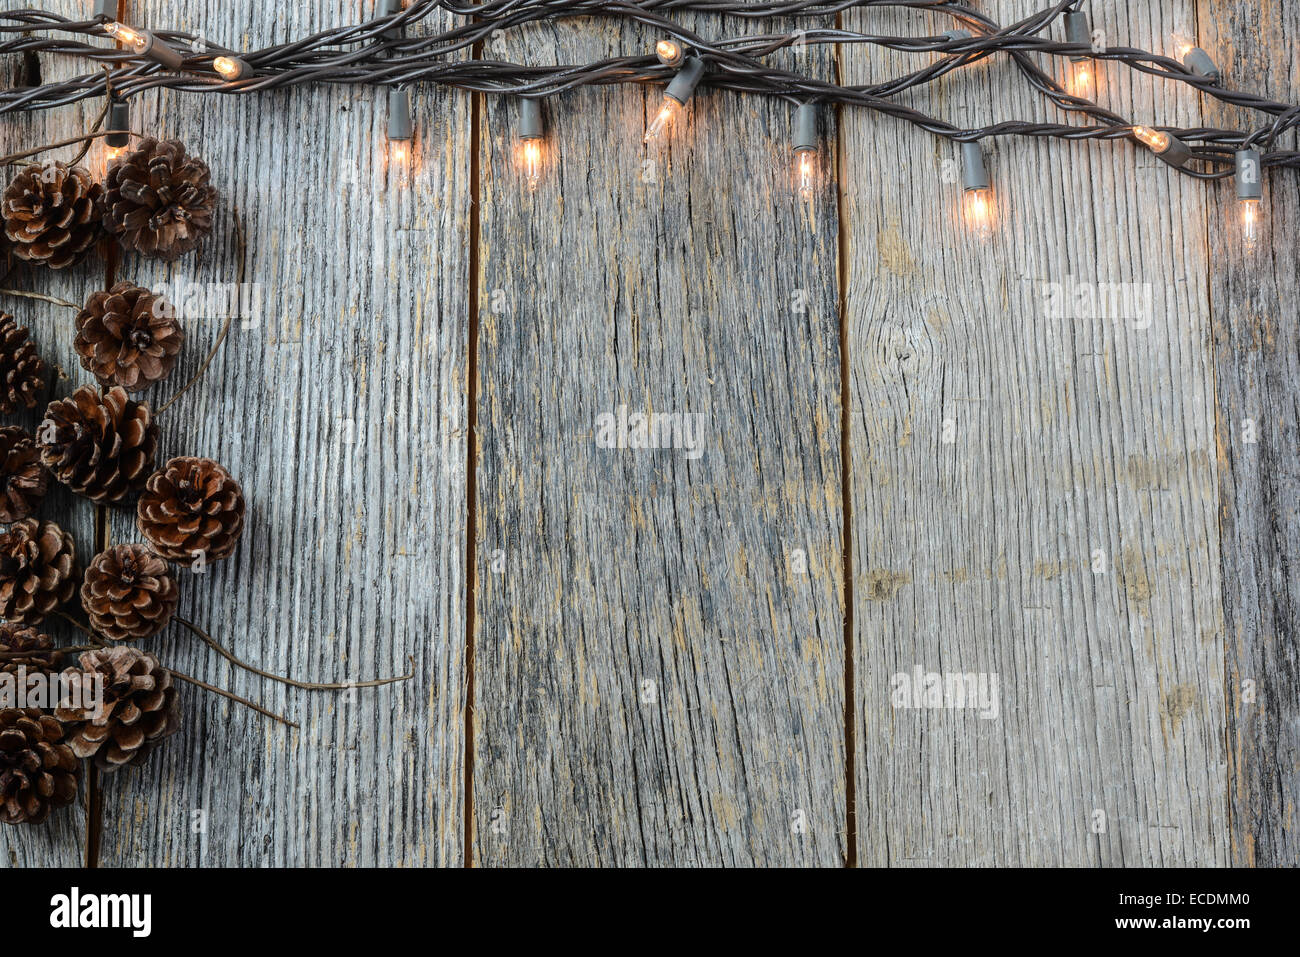 Christmas Lights and Pinecones on Rustic Wood Background Stock Photo ...